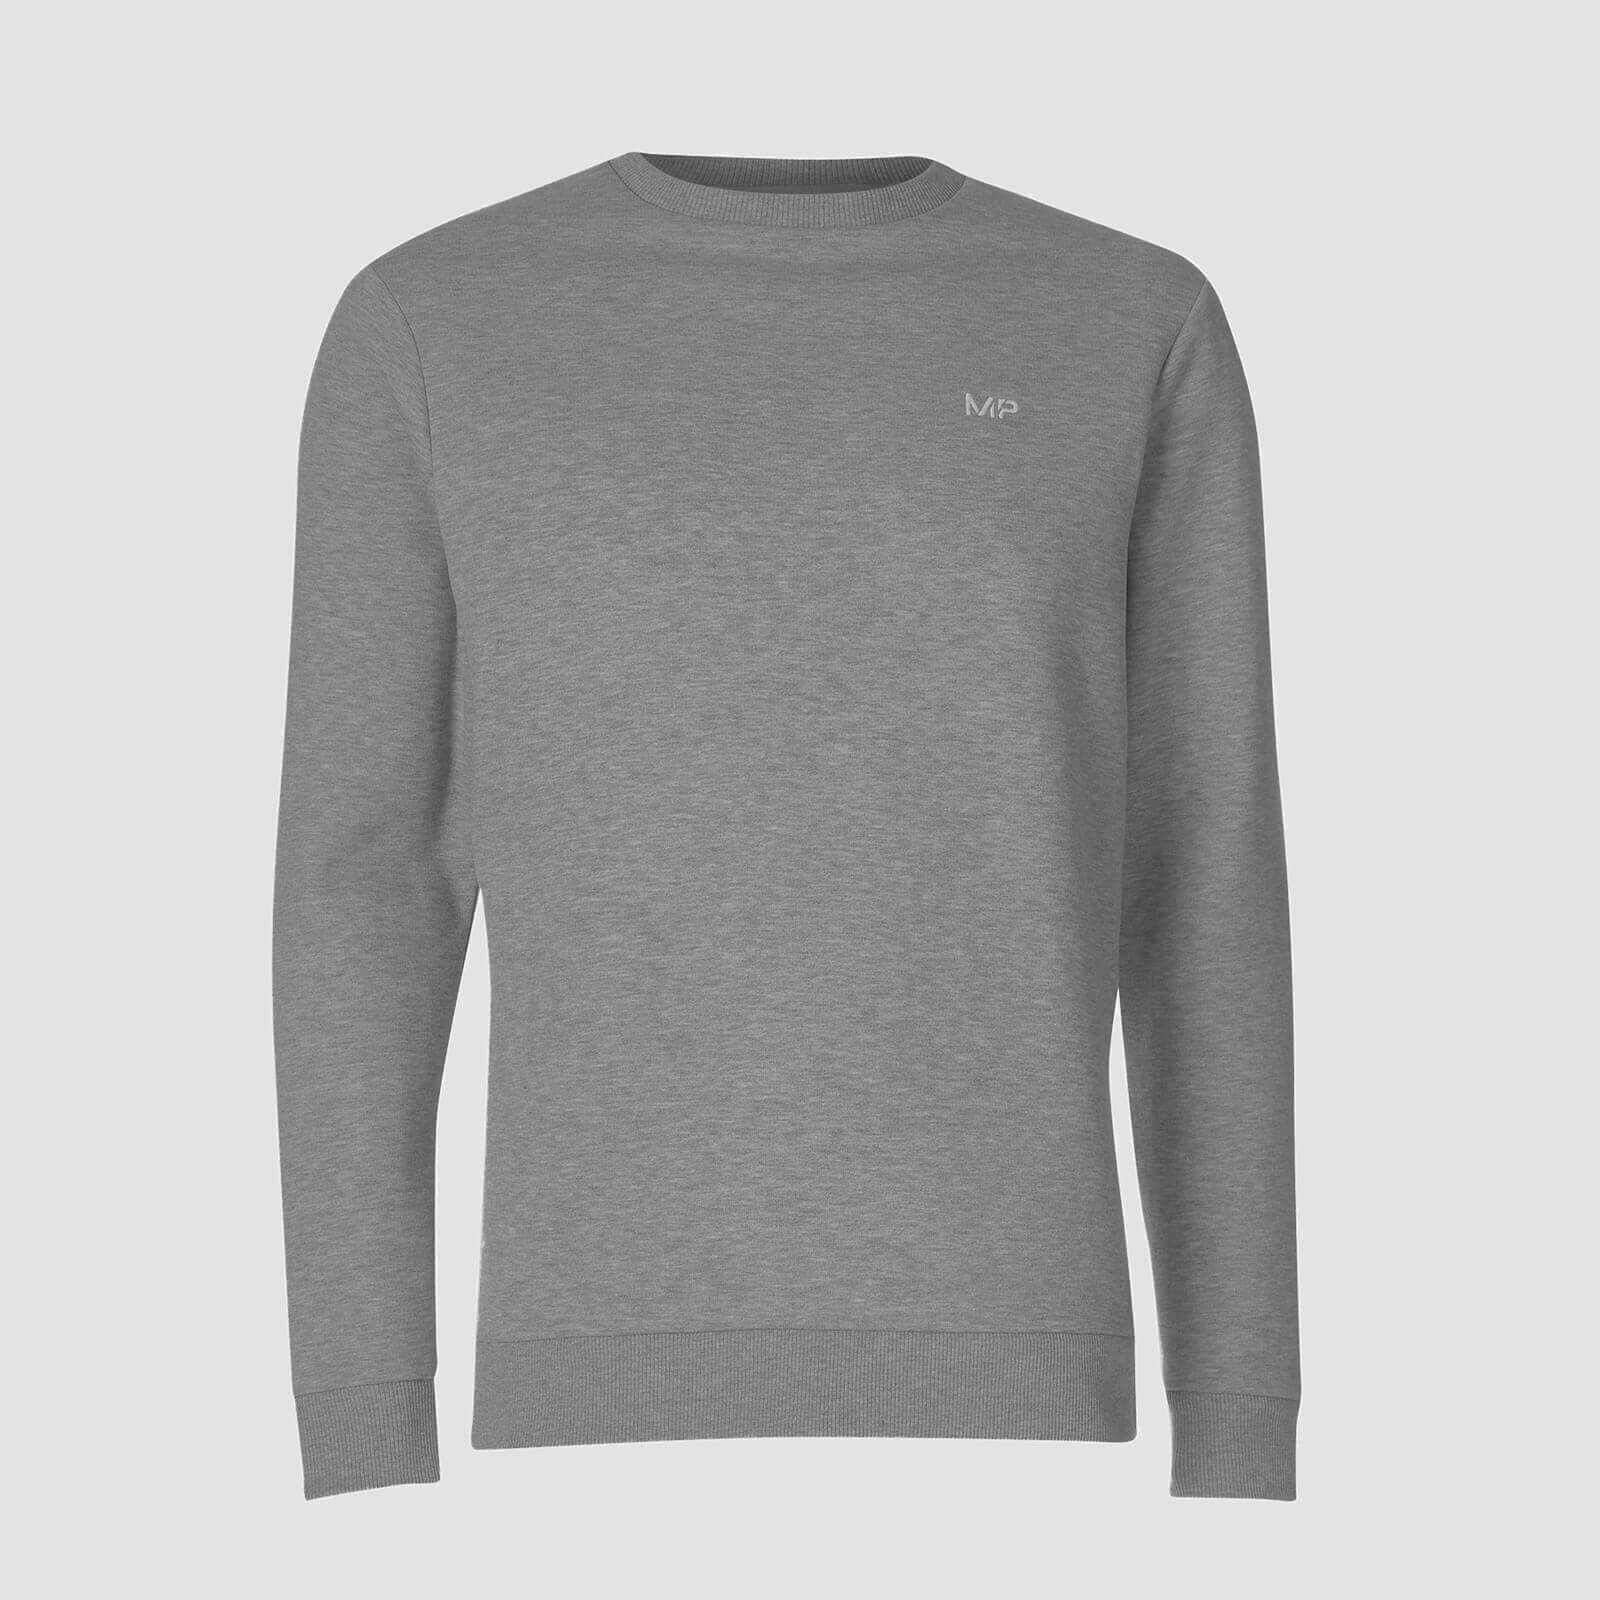 Pull MP Essentials pour hommes – Gris chiné - XL